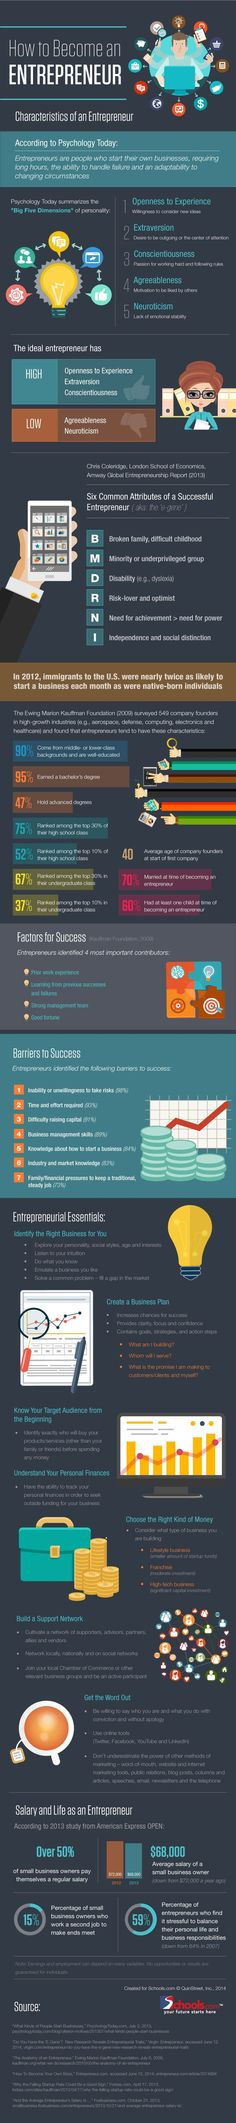 17 Characteristics of Successful Entrepreneurs